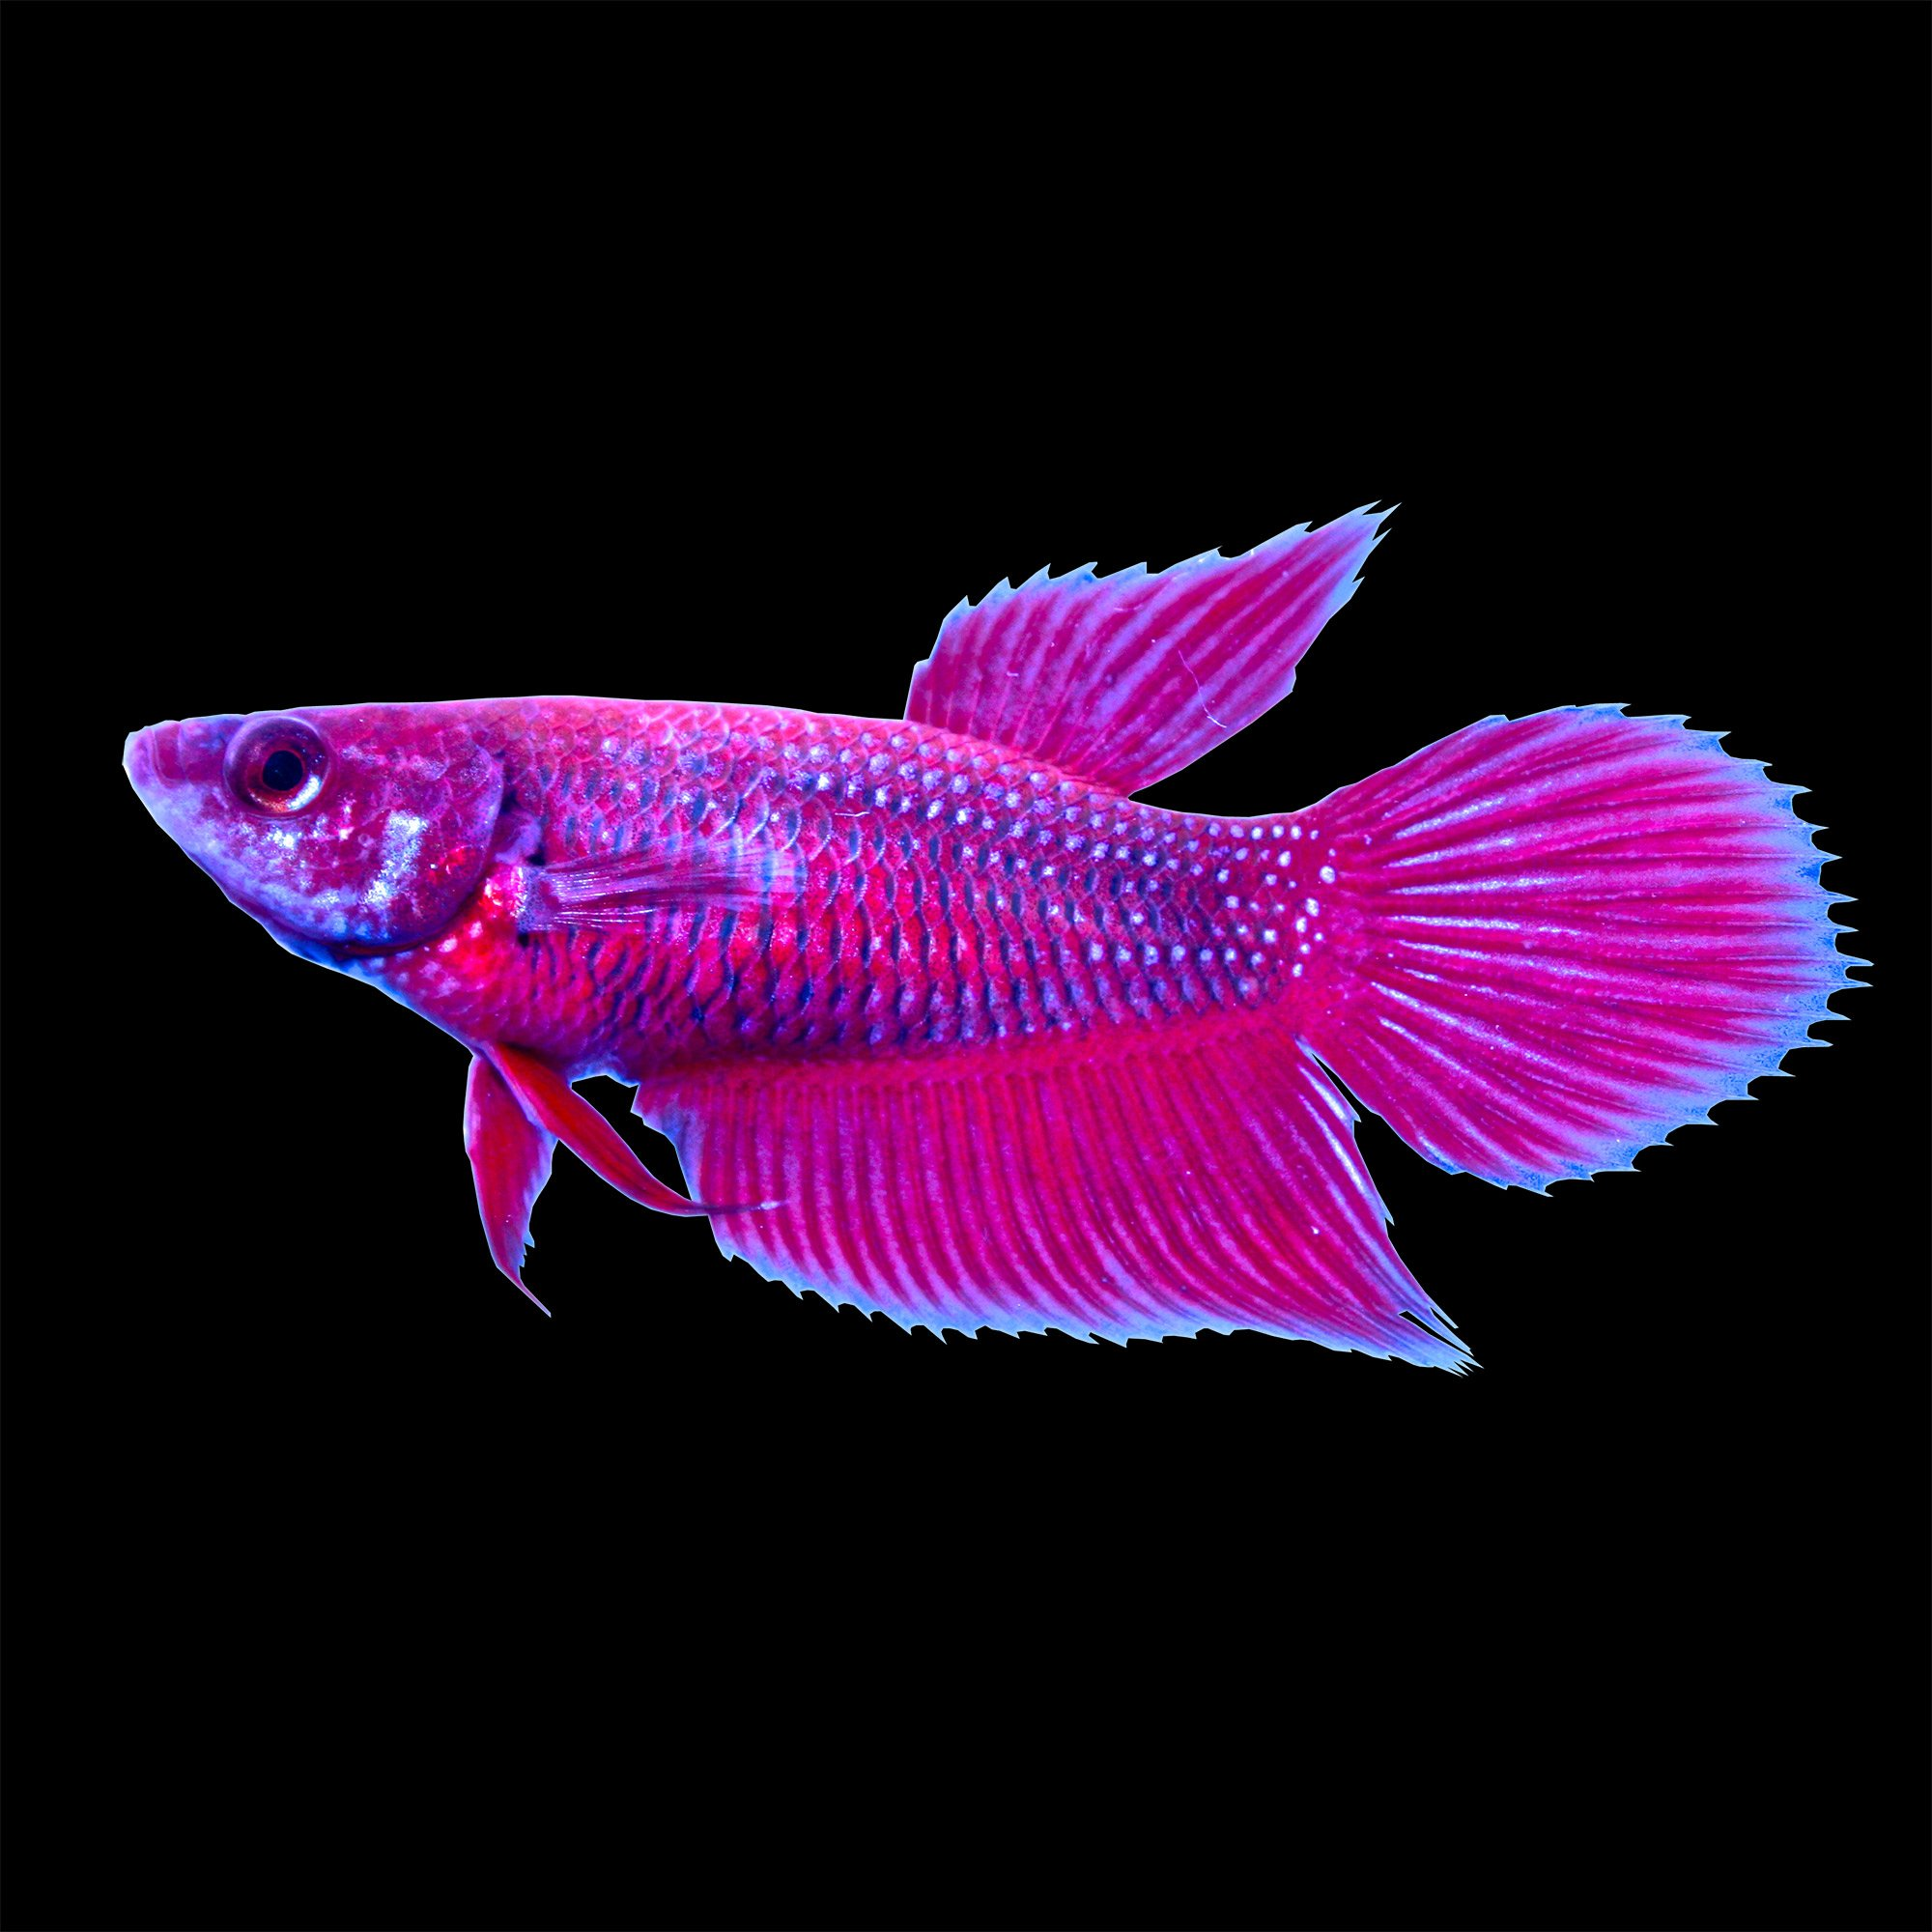 Red female veiltail betta fish petco for Types of betta fish petco